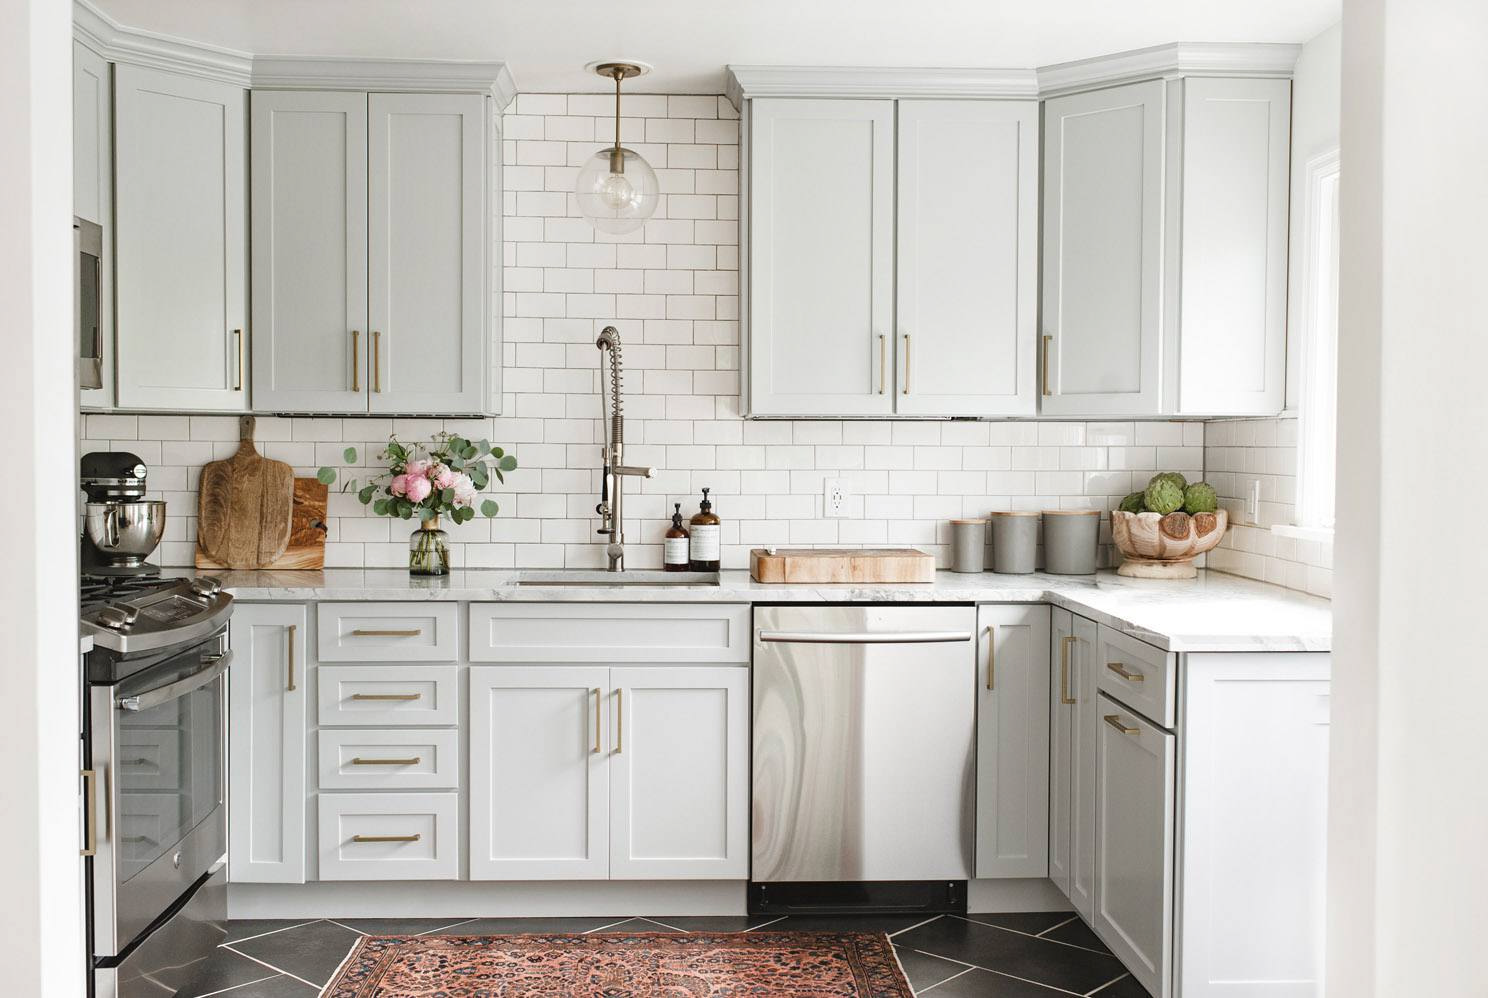 Get To Know The Light Grey Kitchen Cabinet Design That Becoming Popular | Roy Home Design